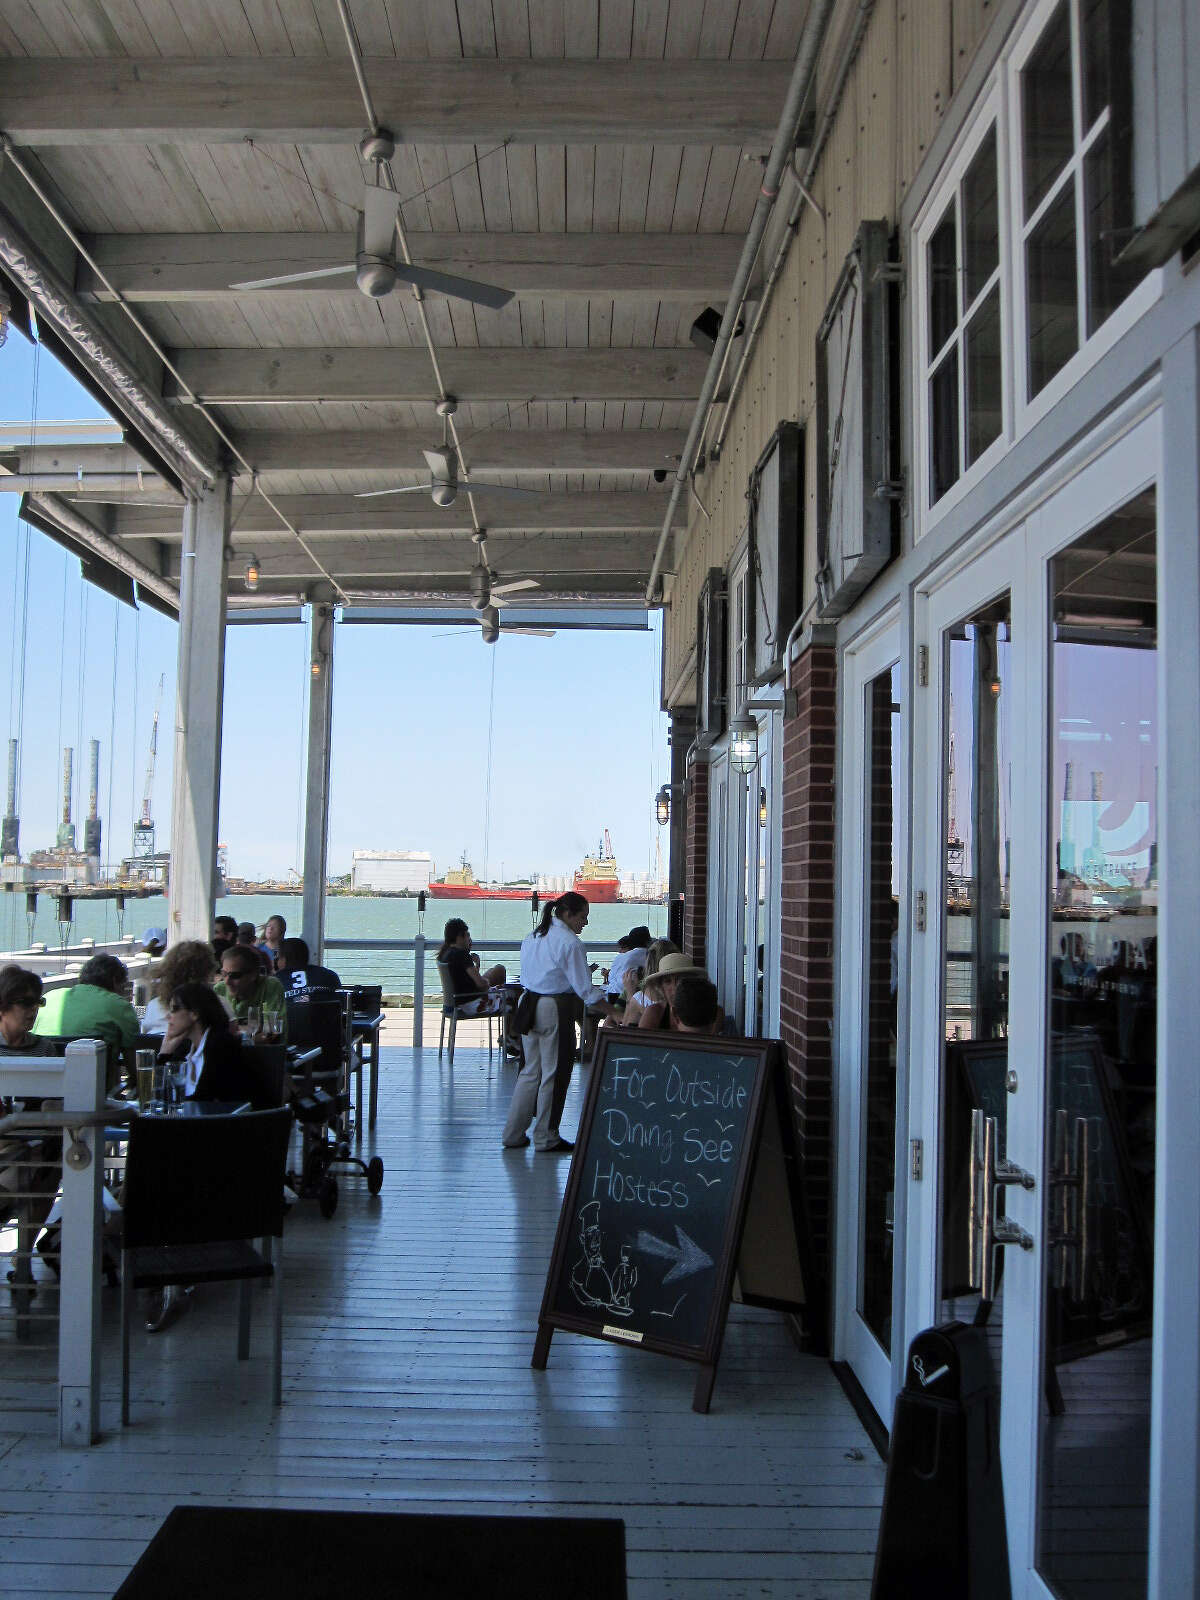 Olympia Grill at Pier 21 in Galveston looks our on Galveston harbor.